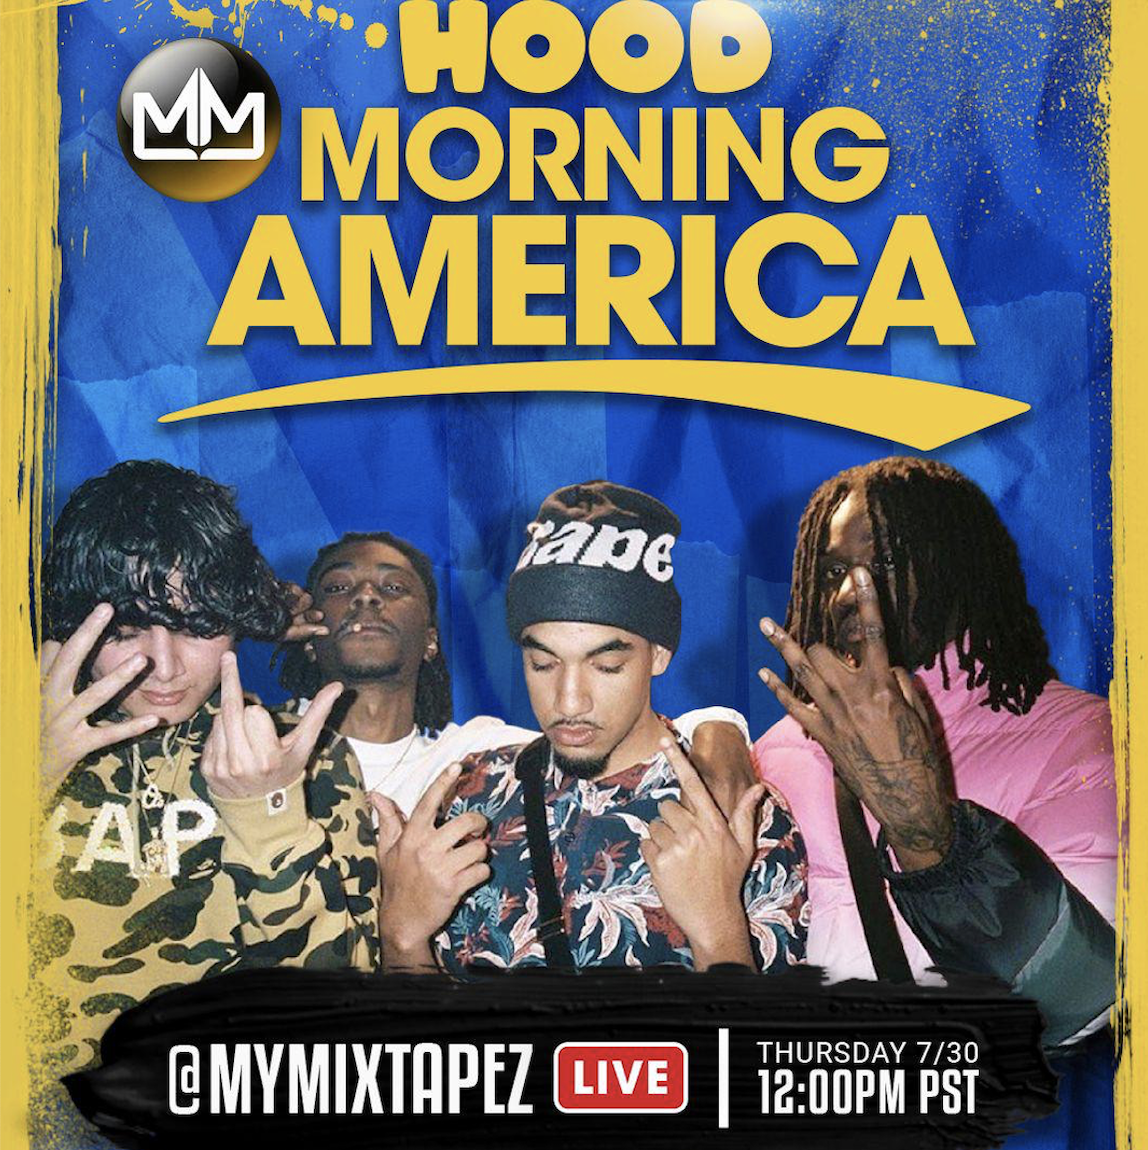 HOOD MORNING AMERICA RETURNS WITH NEW INSTALLMENT ON MYMIXTAPEZ IG LIVE FEATURING GUEST SHORELINE MAFIA